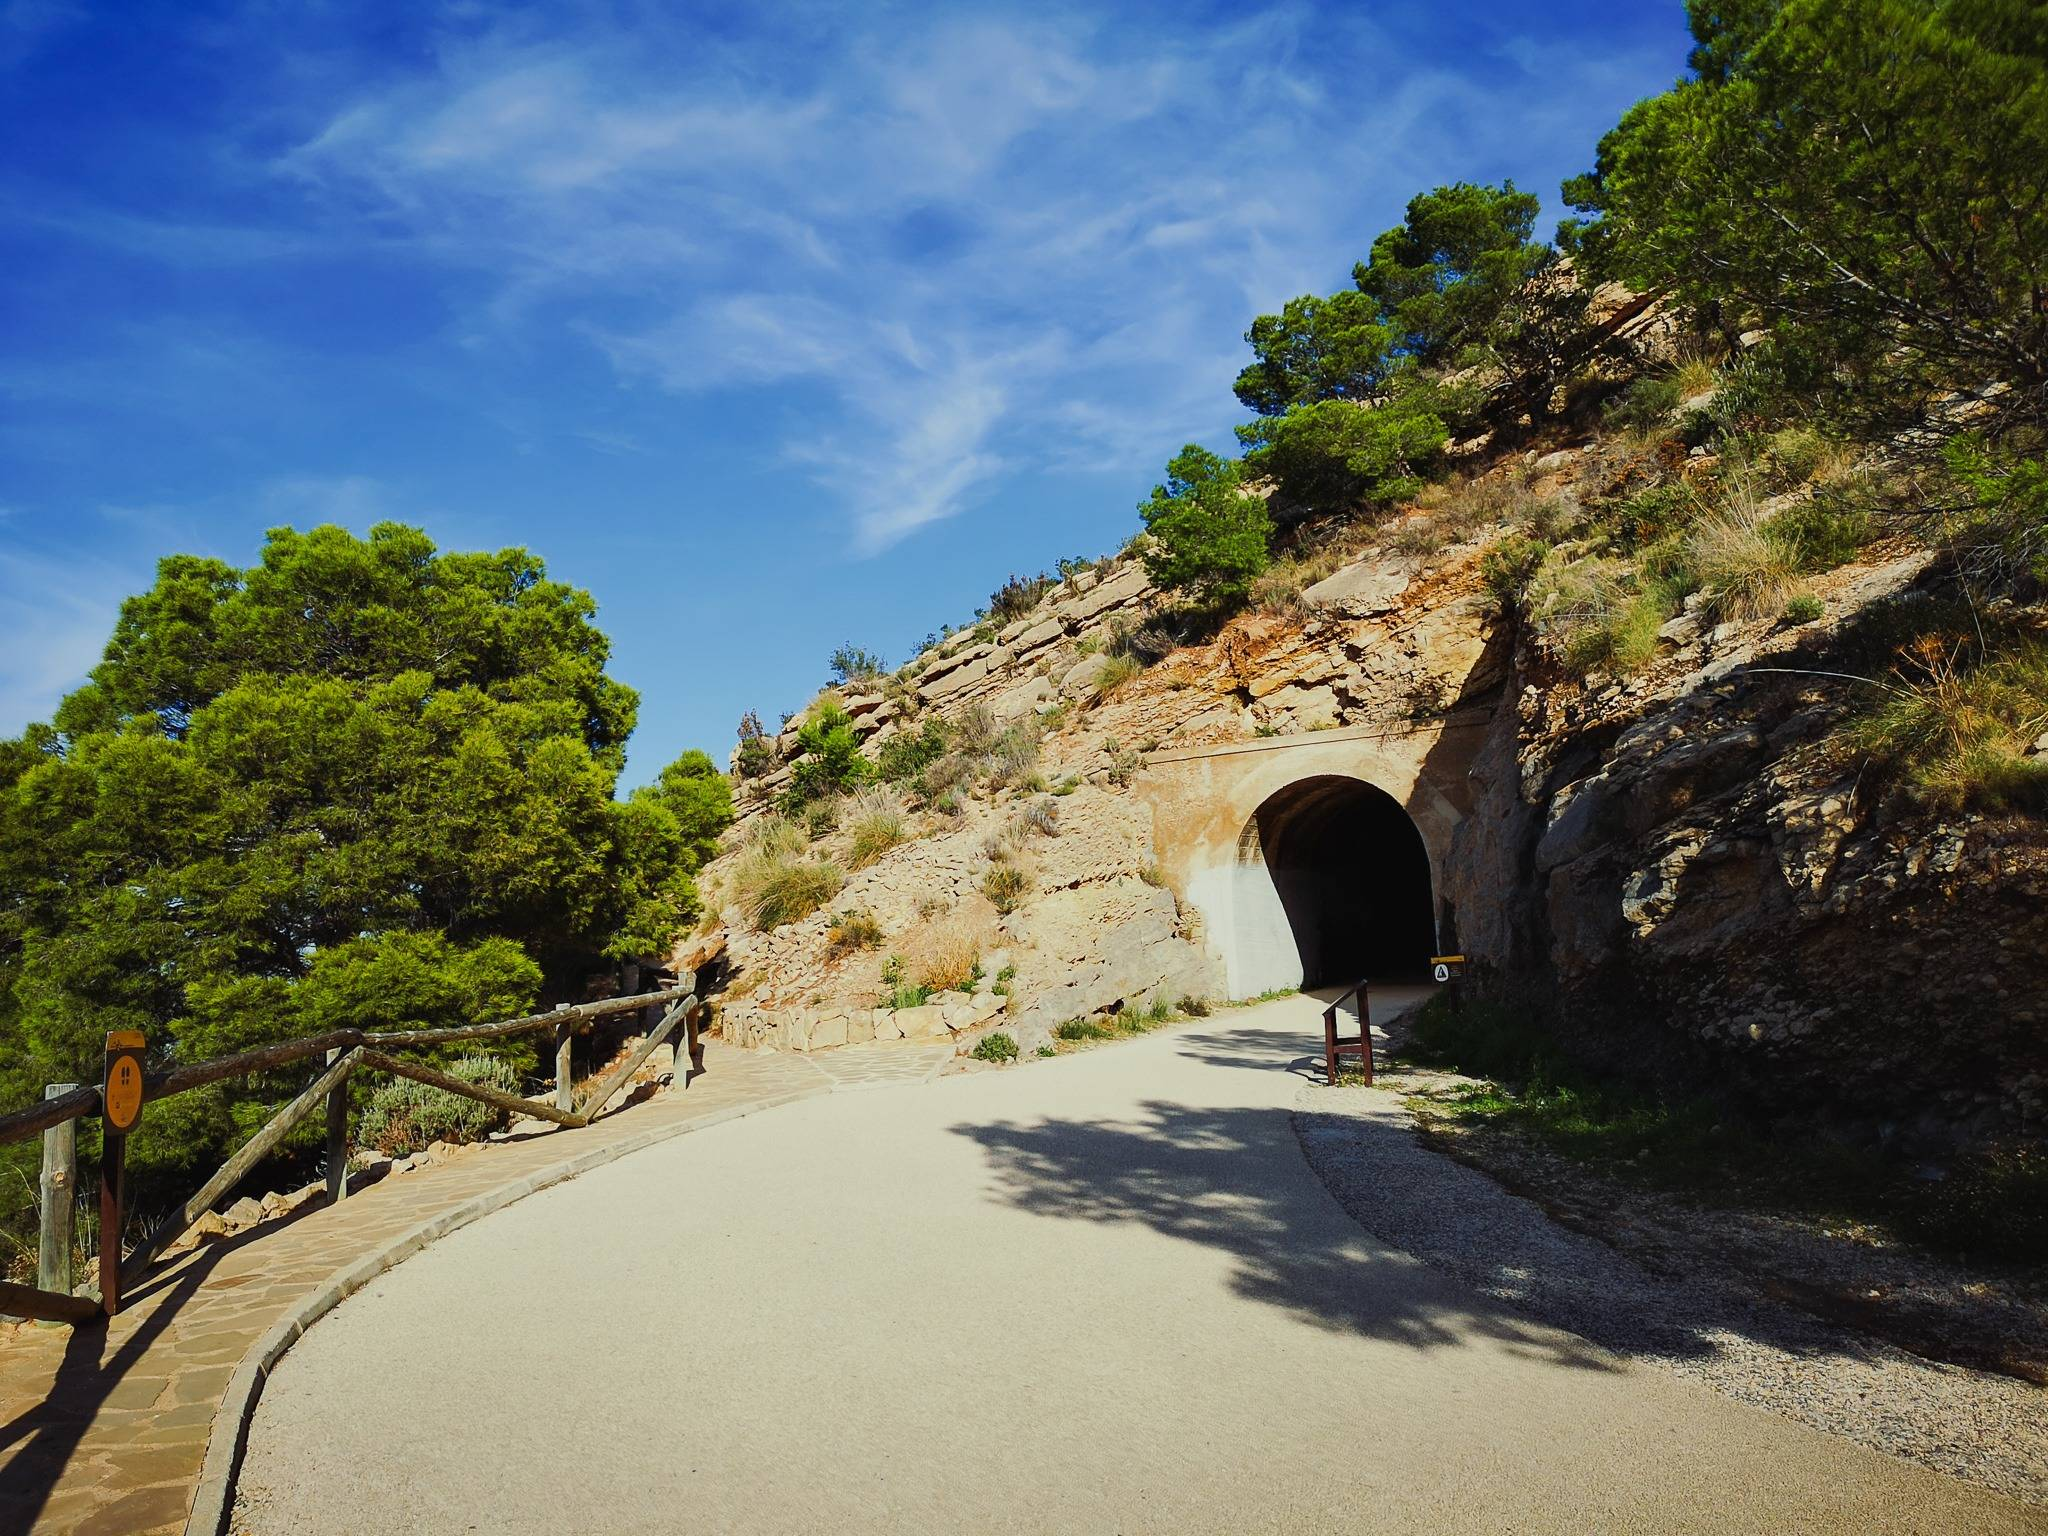 The next thing to catch your attention, undoubtedly, is going to be a tunnel, built here 60 years ago to make the access to 156-year old Albir lighthouse less dangerous. Photo by Alis Monte [CC BY-SA 4.0], via Connecting the Dots